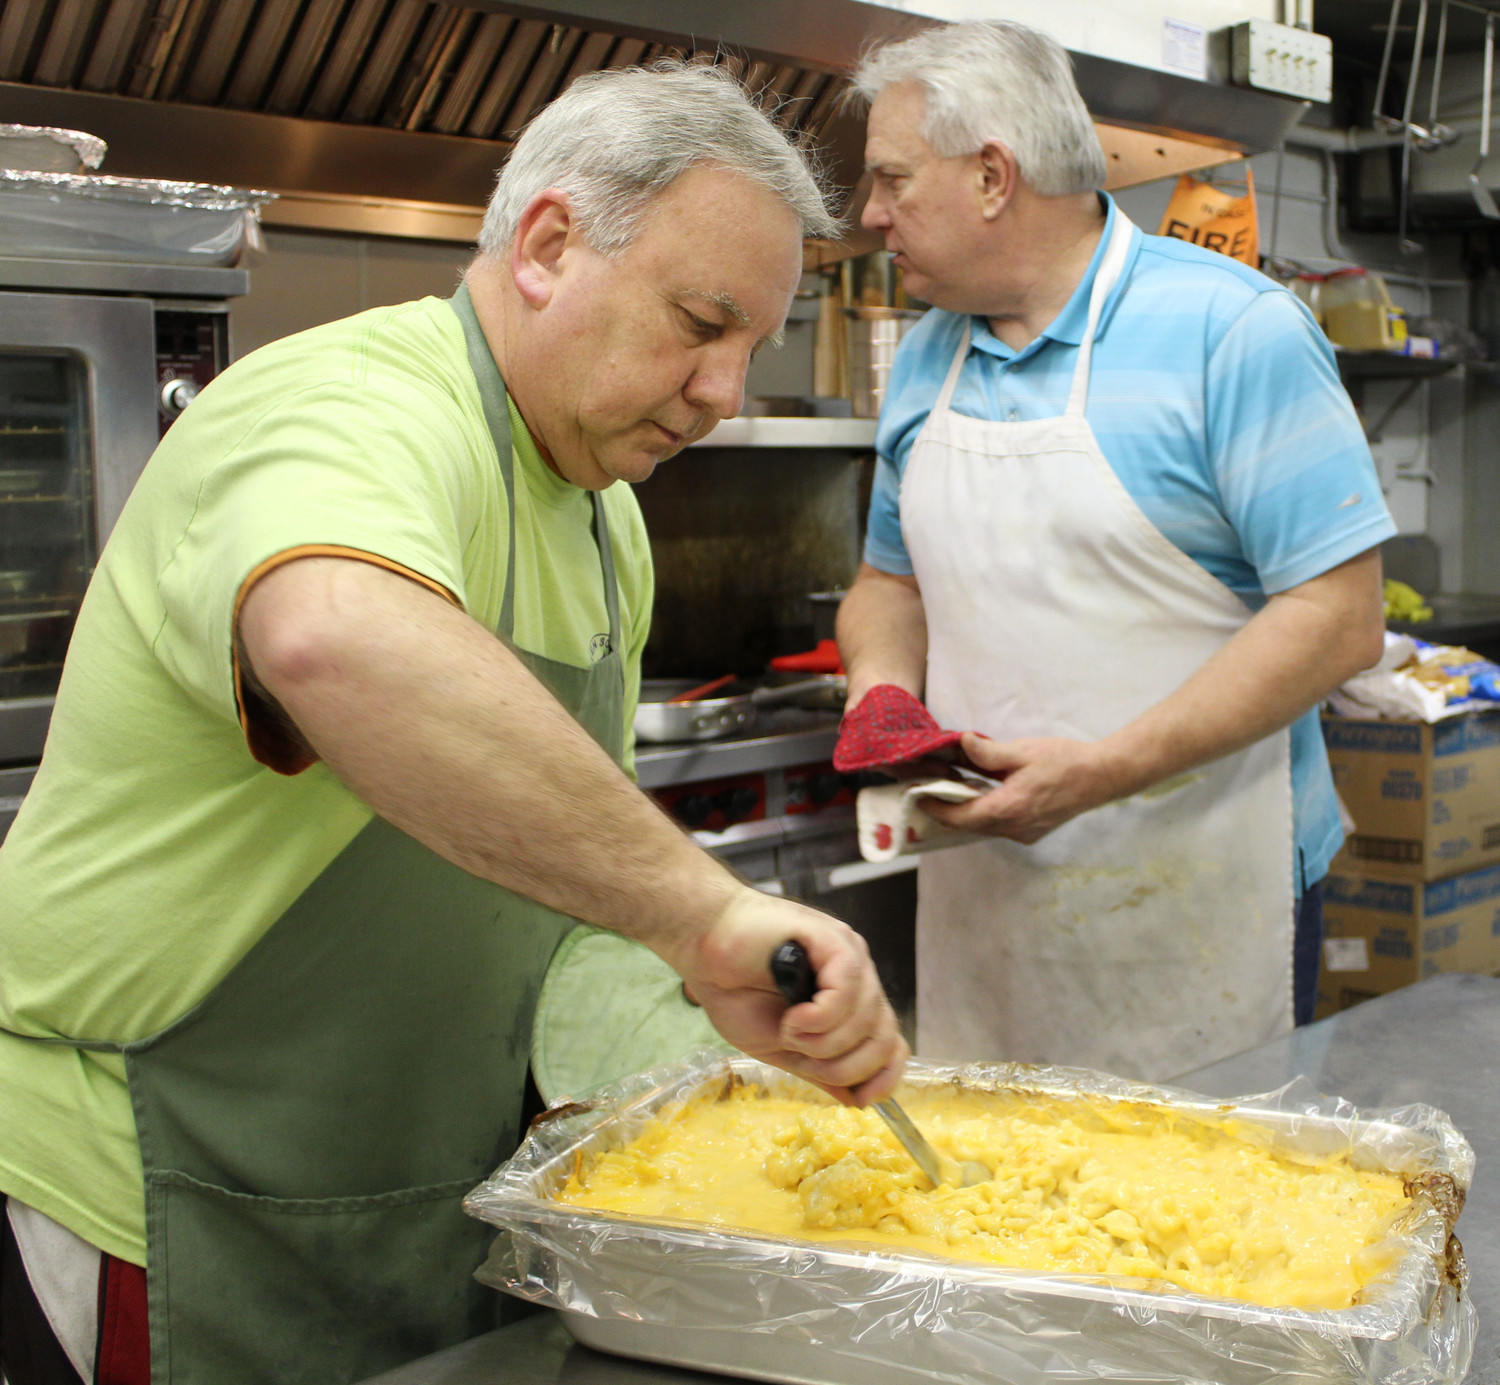 Lou Tschachler stirs macaroni and cheese at Seven Sorrows.